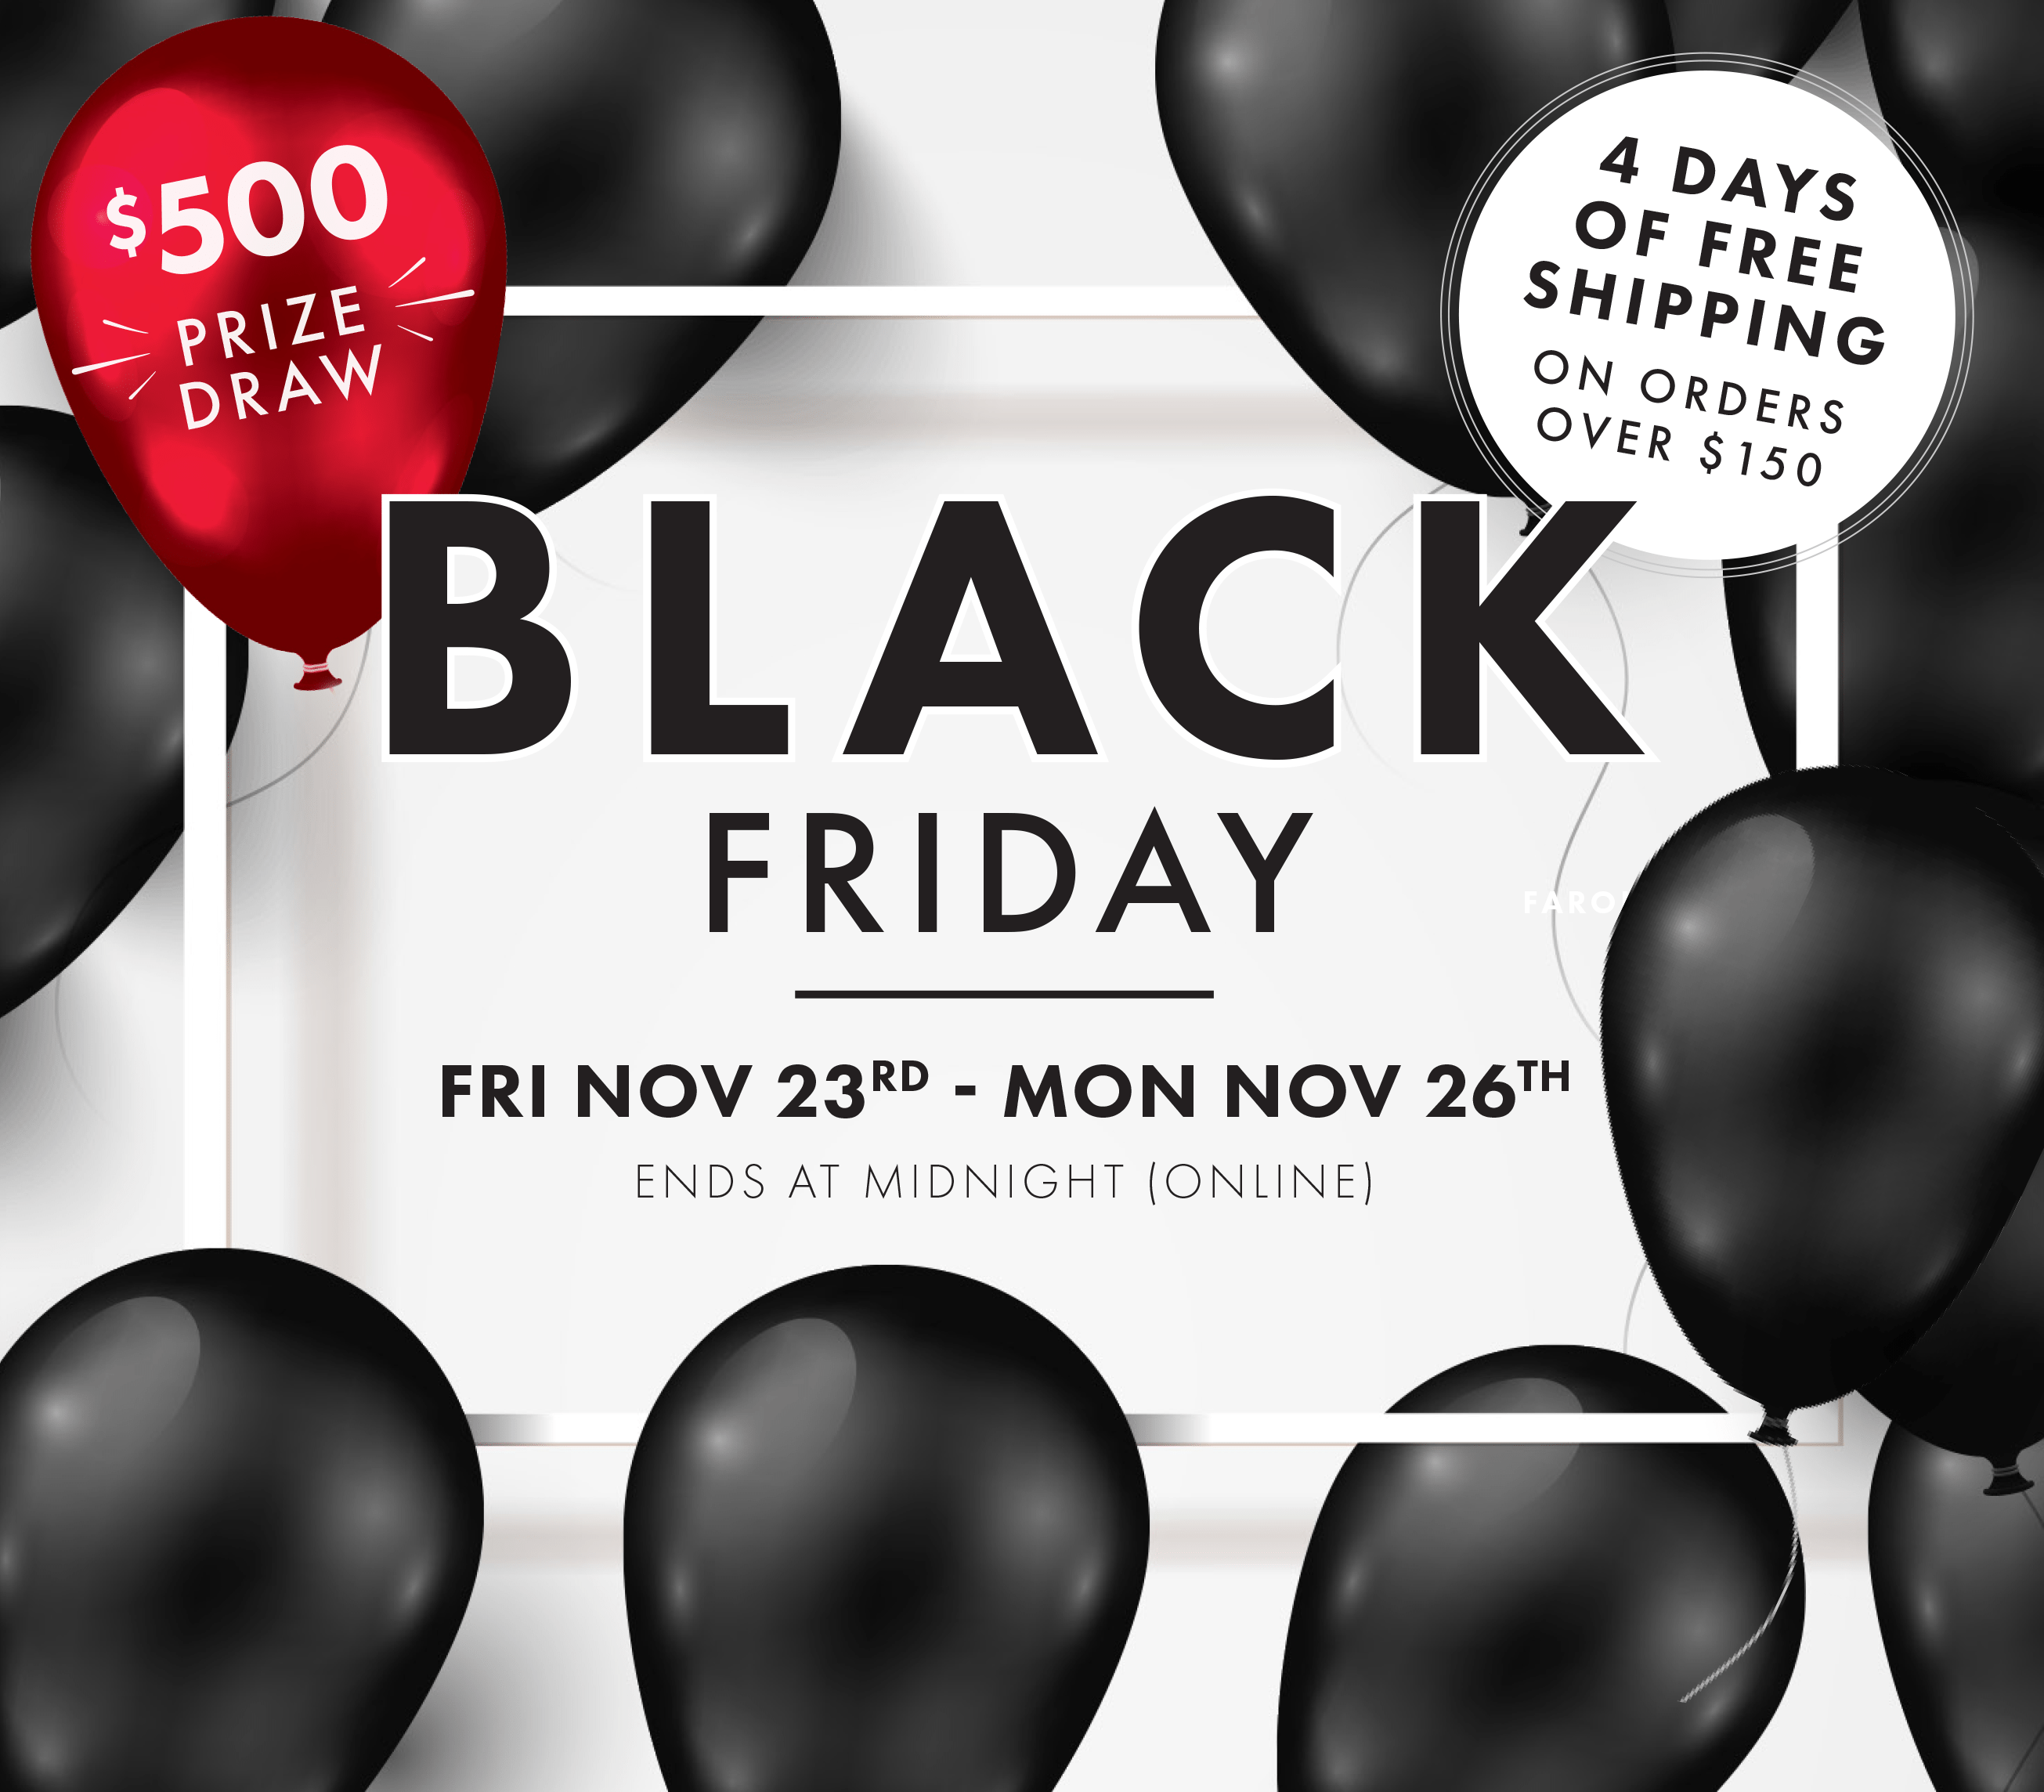 Black Friday 2018 RSVP